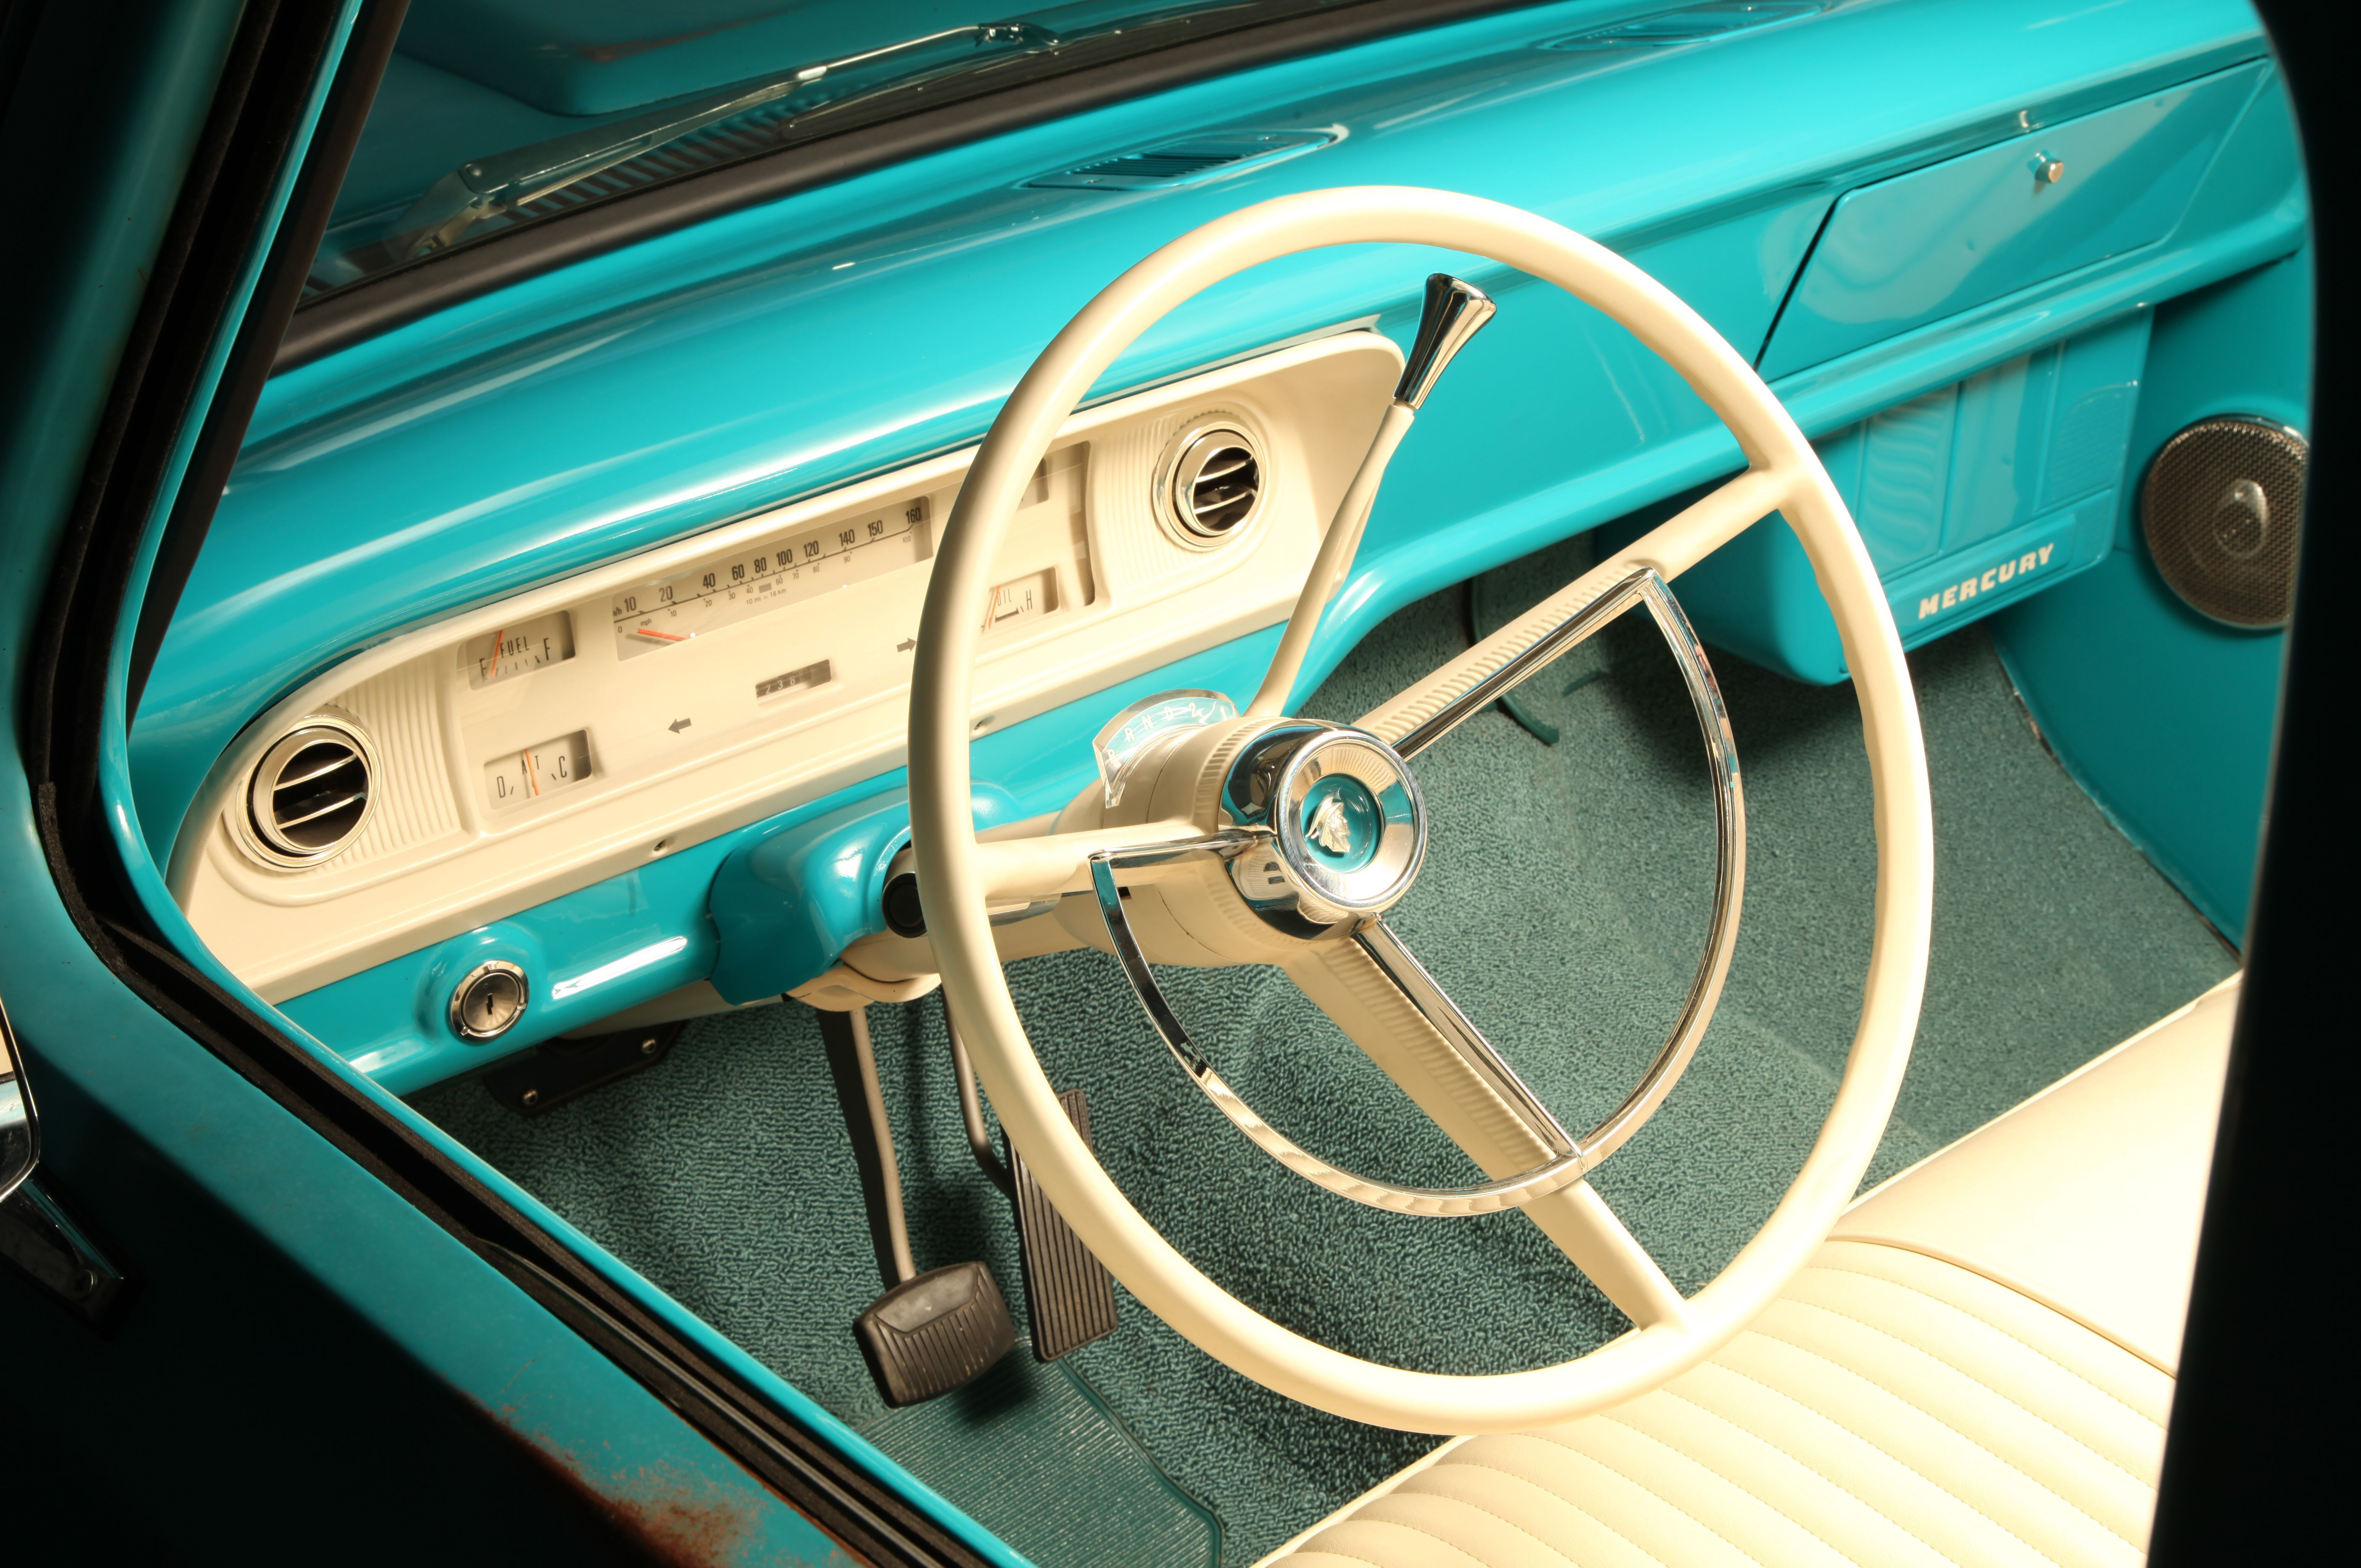 1955 ford f100 trucks for sale used cars on oodle autos post - 1968 Interior Mercury Truck